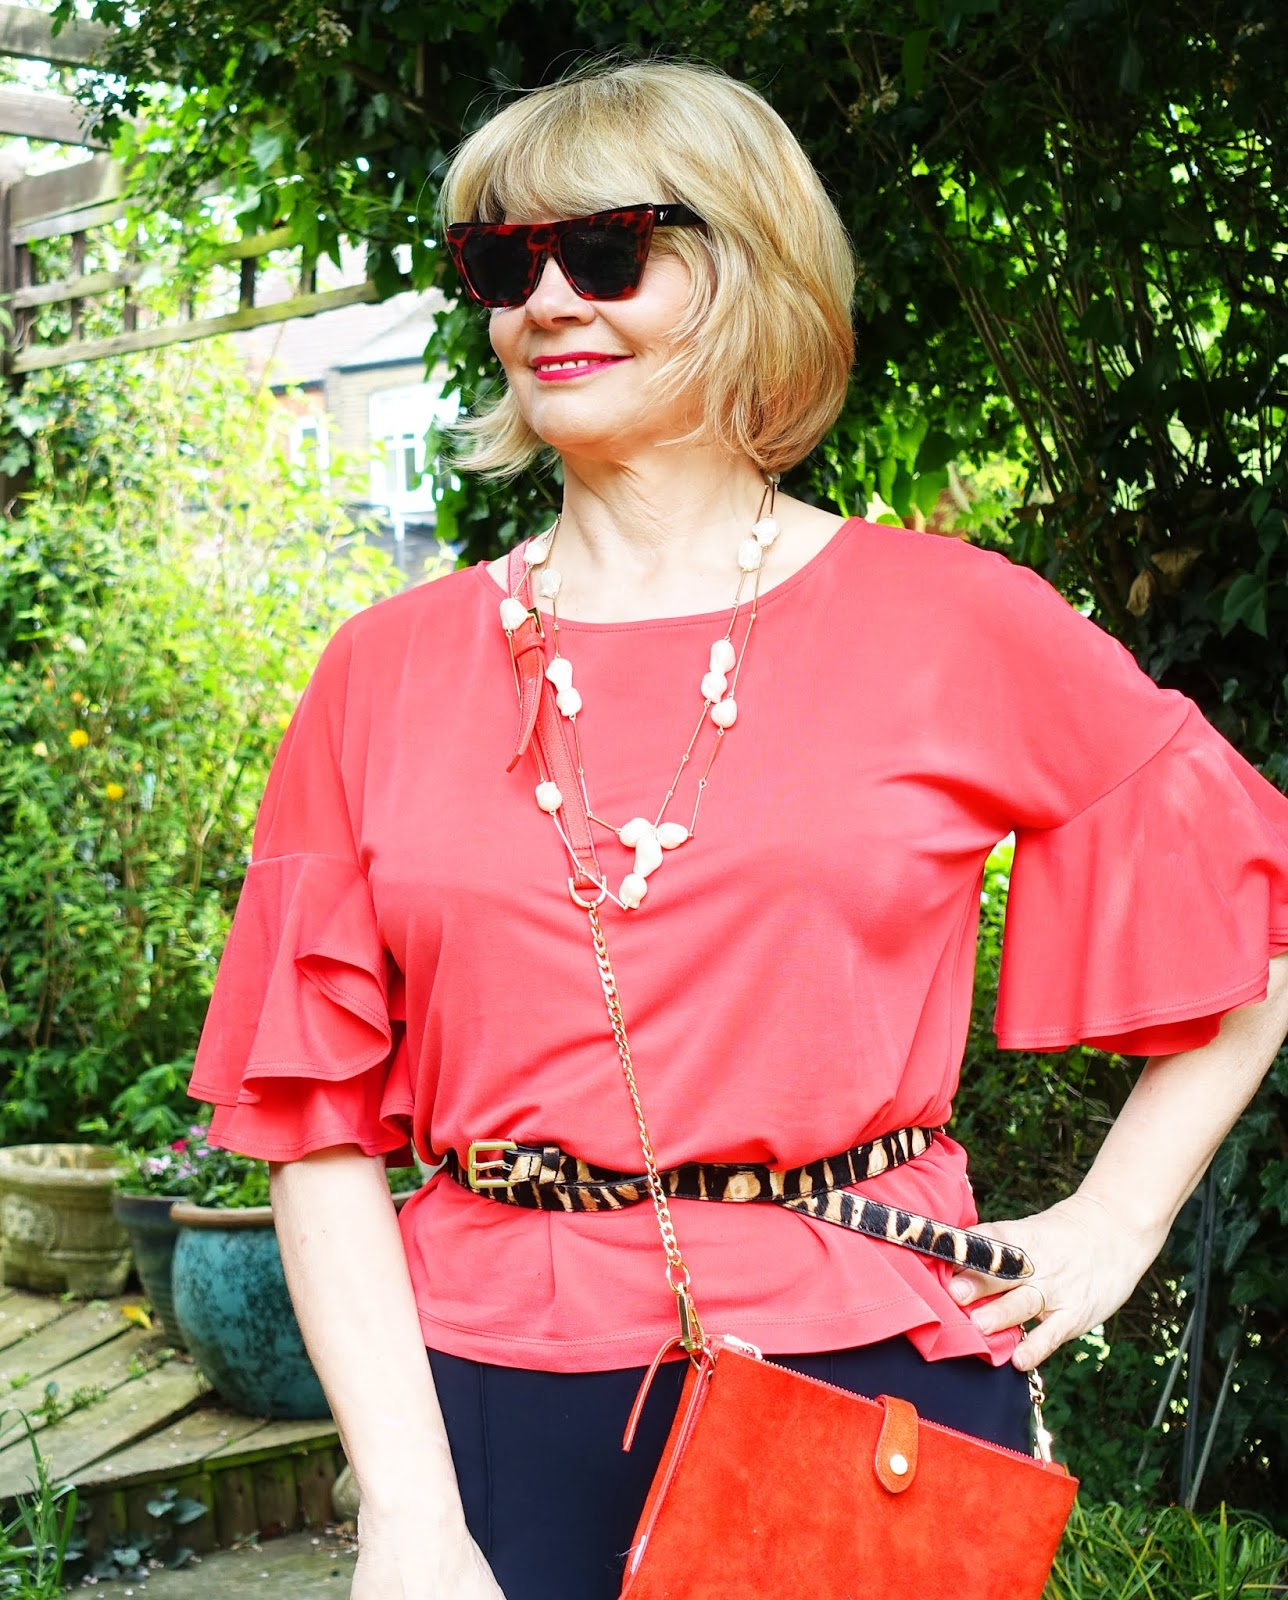 Woman wearing red square sunglasses and red top with statement sleeves